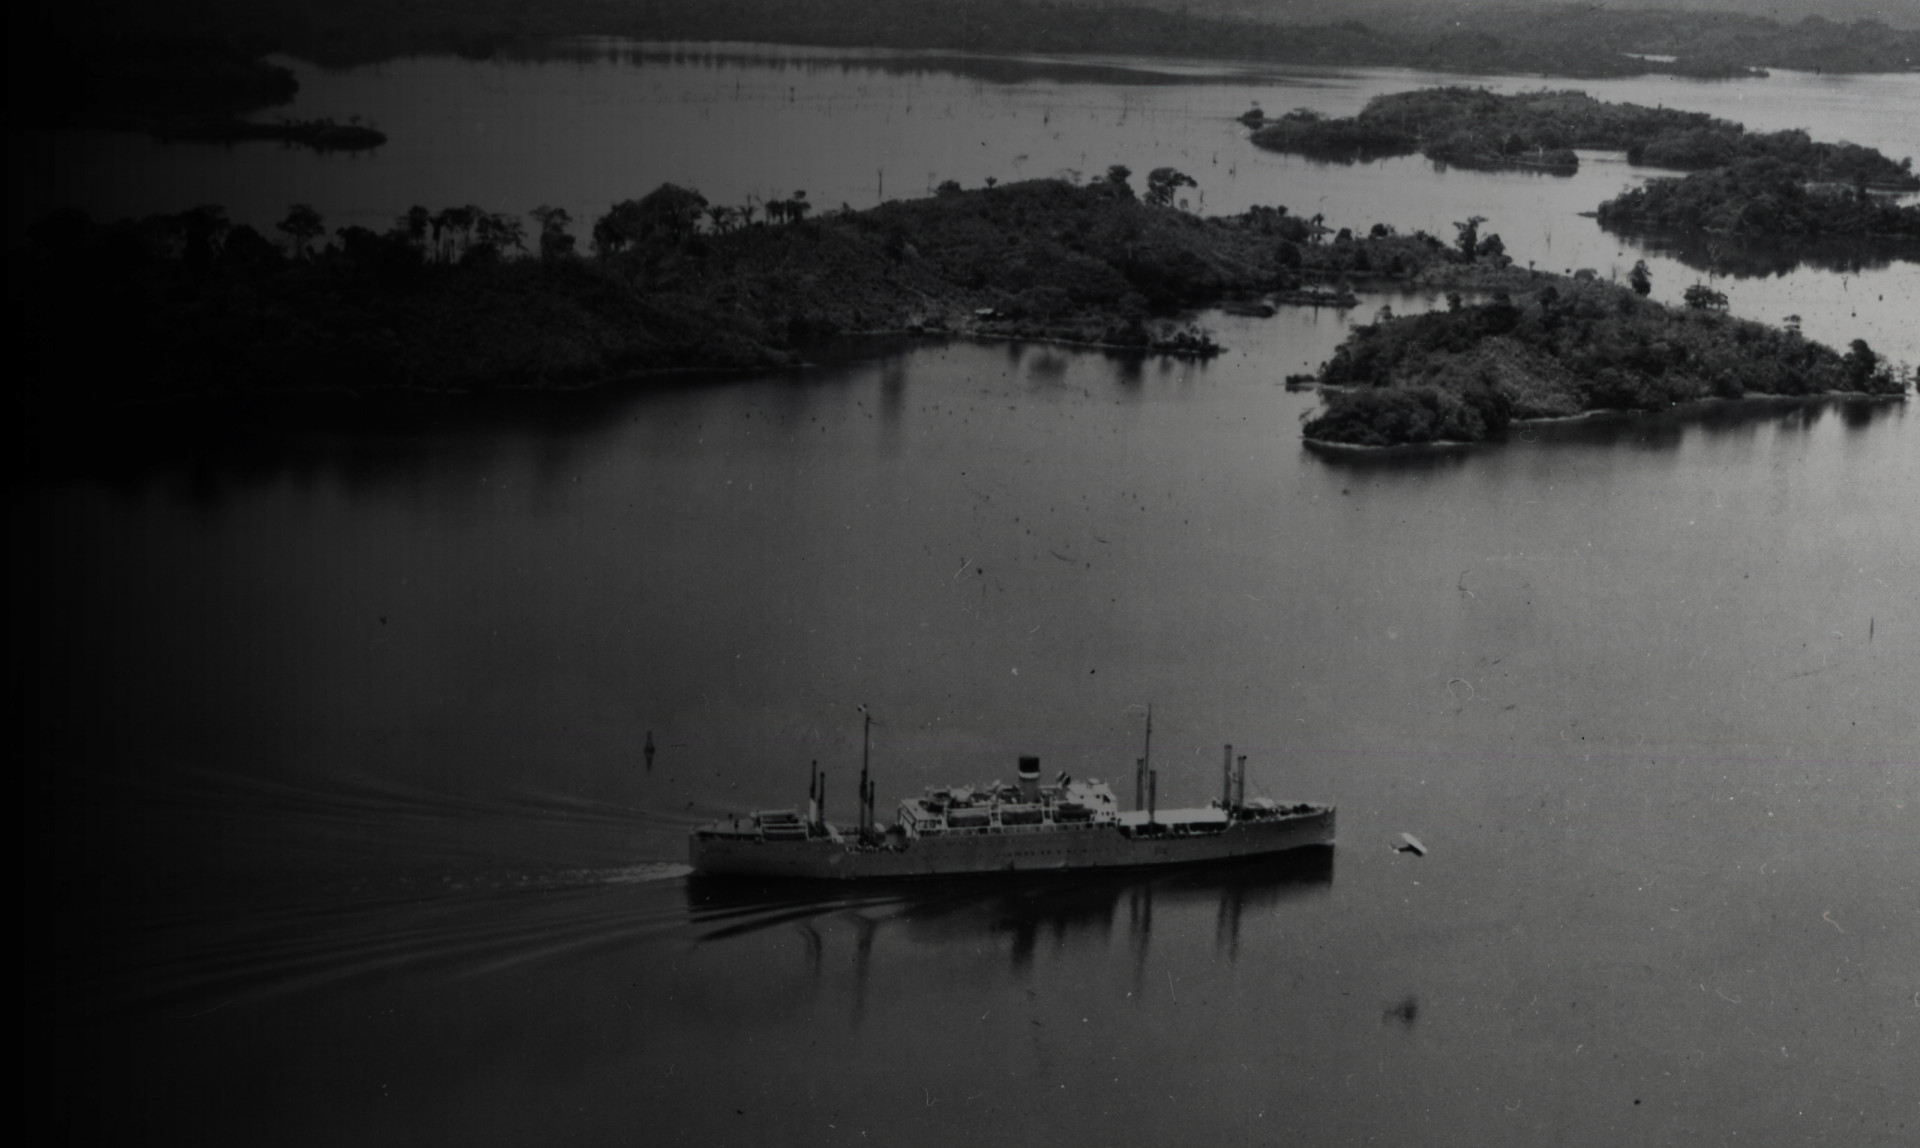 Engineers dammed the Chagres River to create Gatun Lake, the main channel of the Panama Canal